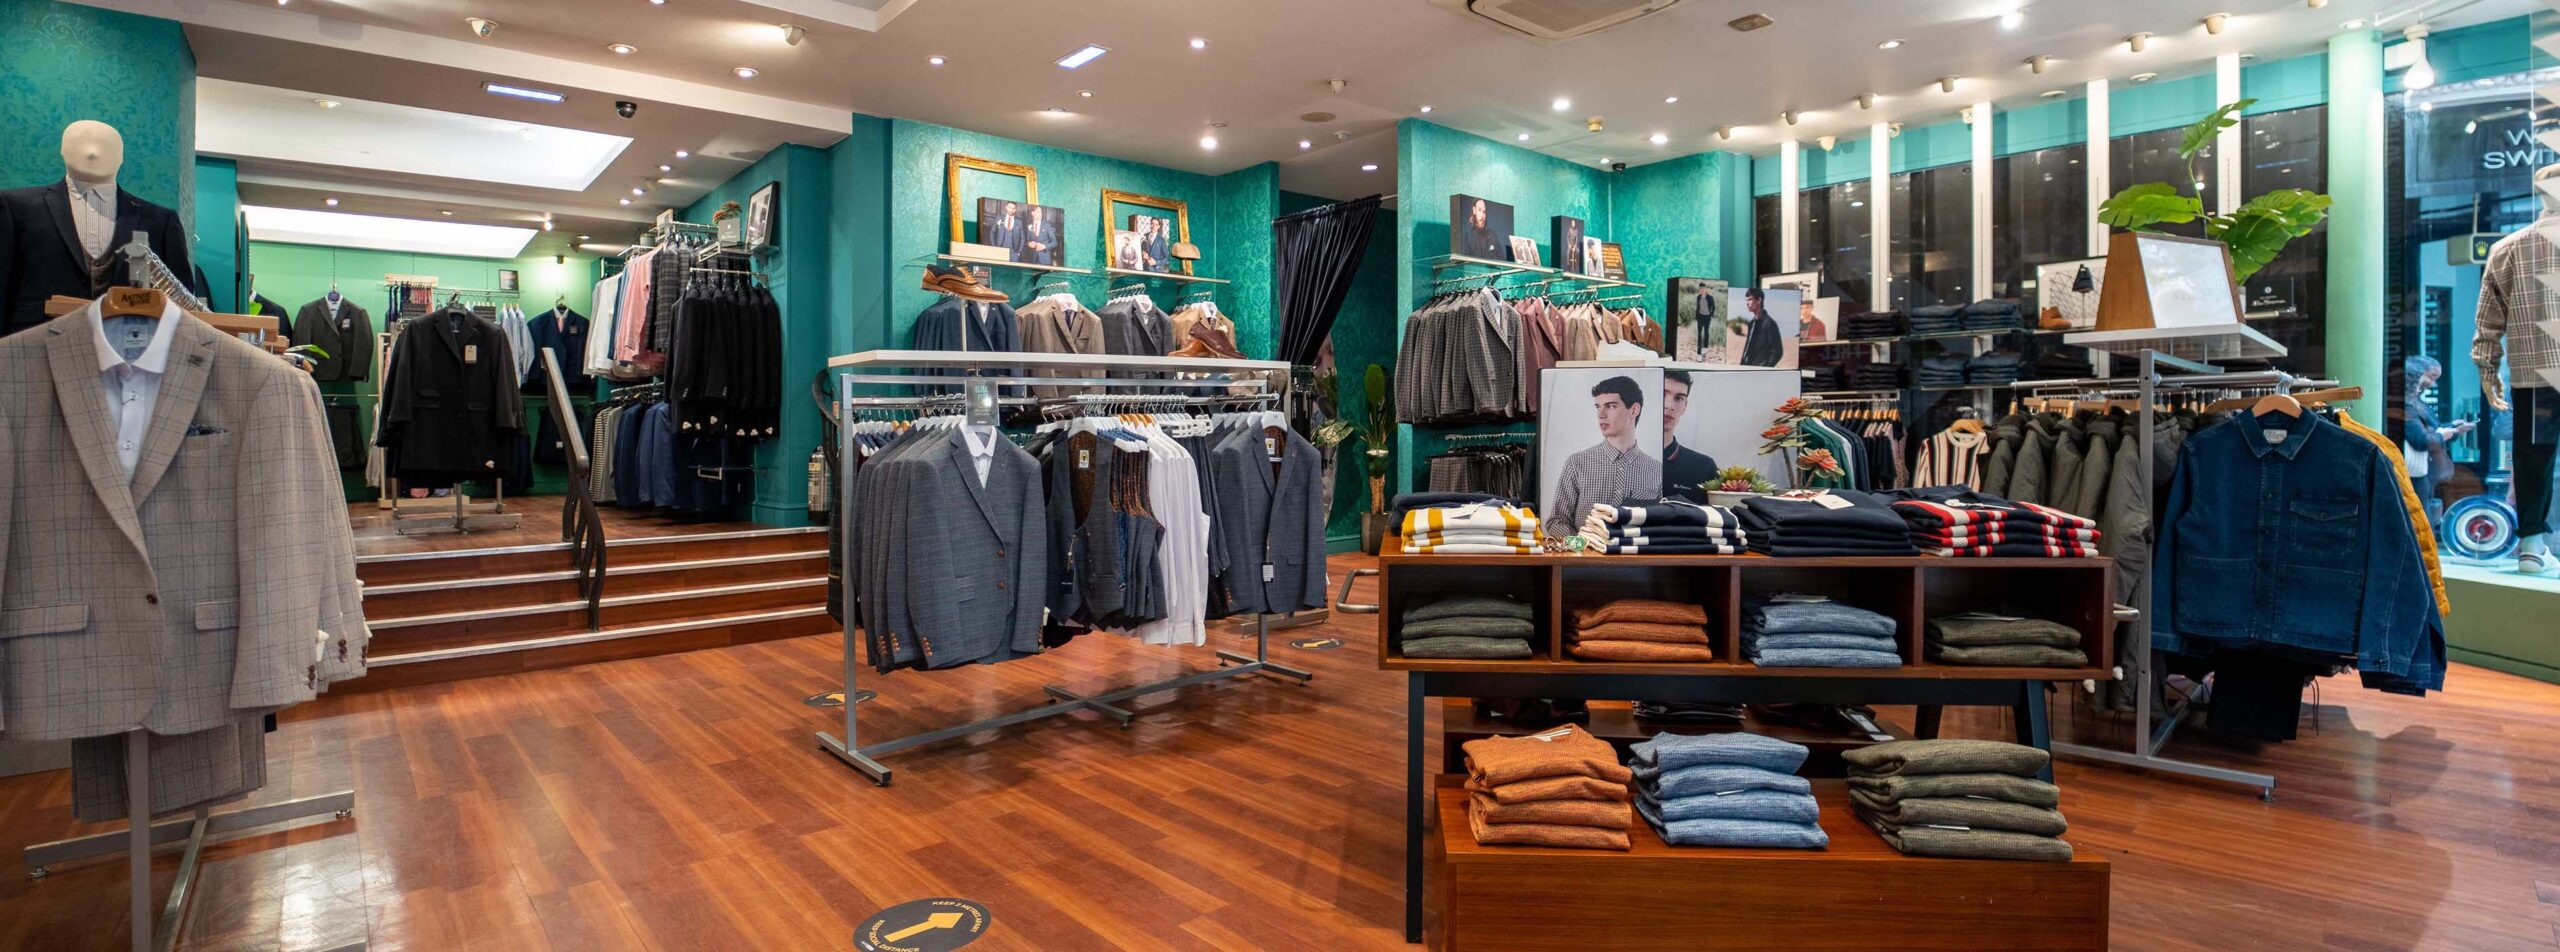 Baird Group celebrates successful opening of new UK high street stores